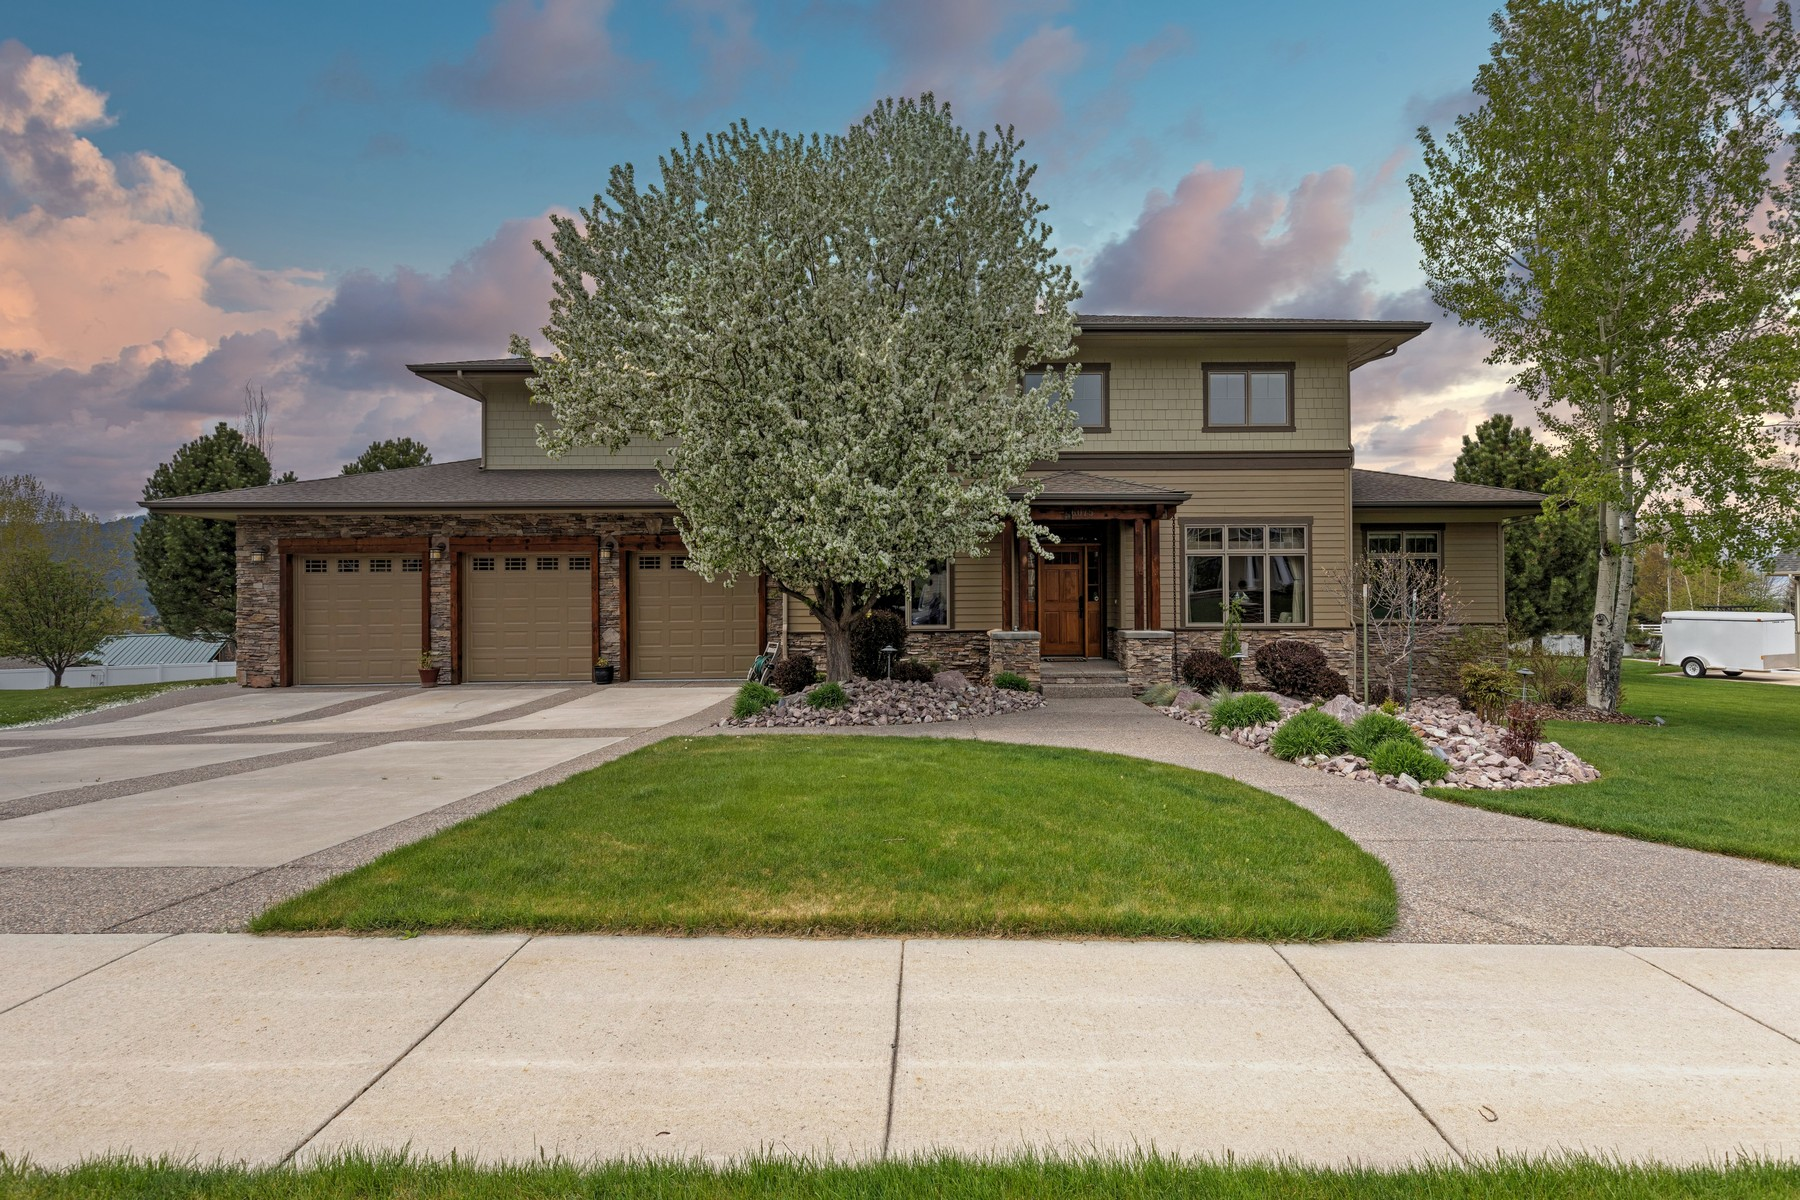 Single Family Homes for Sale at Upper Miller Creek Home 6075 Marias Street Missoula, Montana 59803 United States